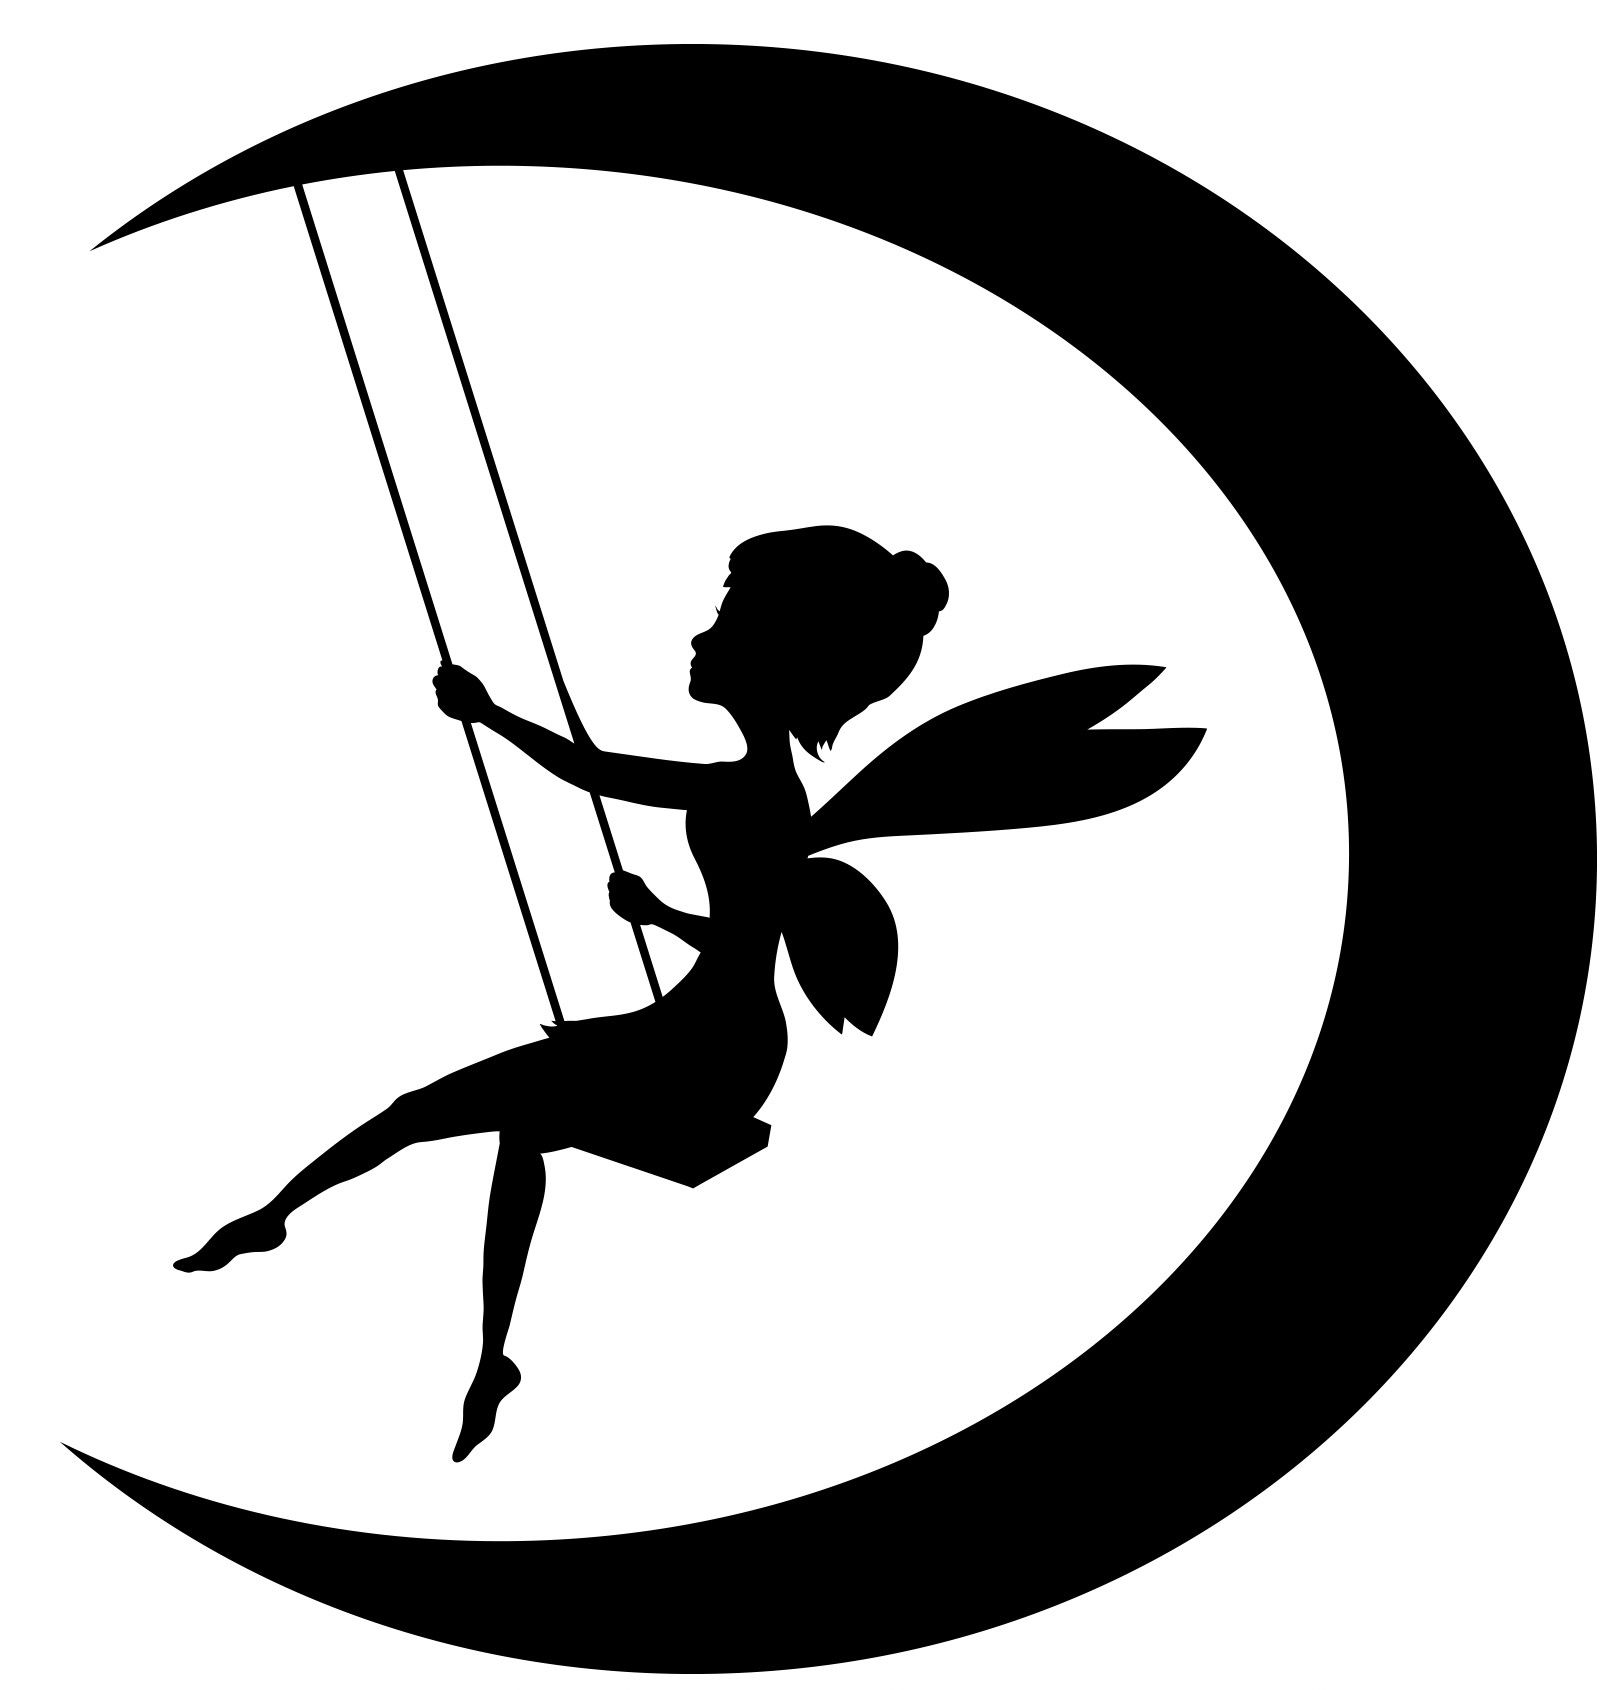 fairy clipart, viewing gallery for fairy moon silhouette clipart #31455